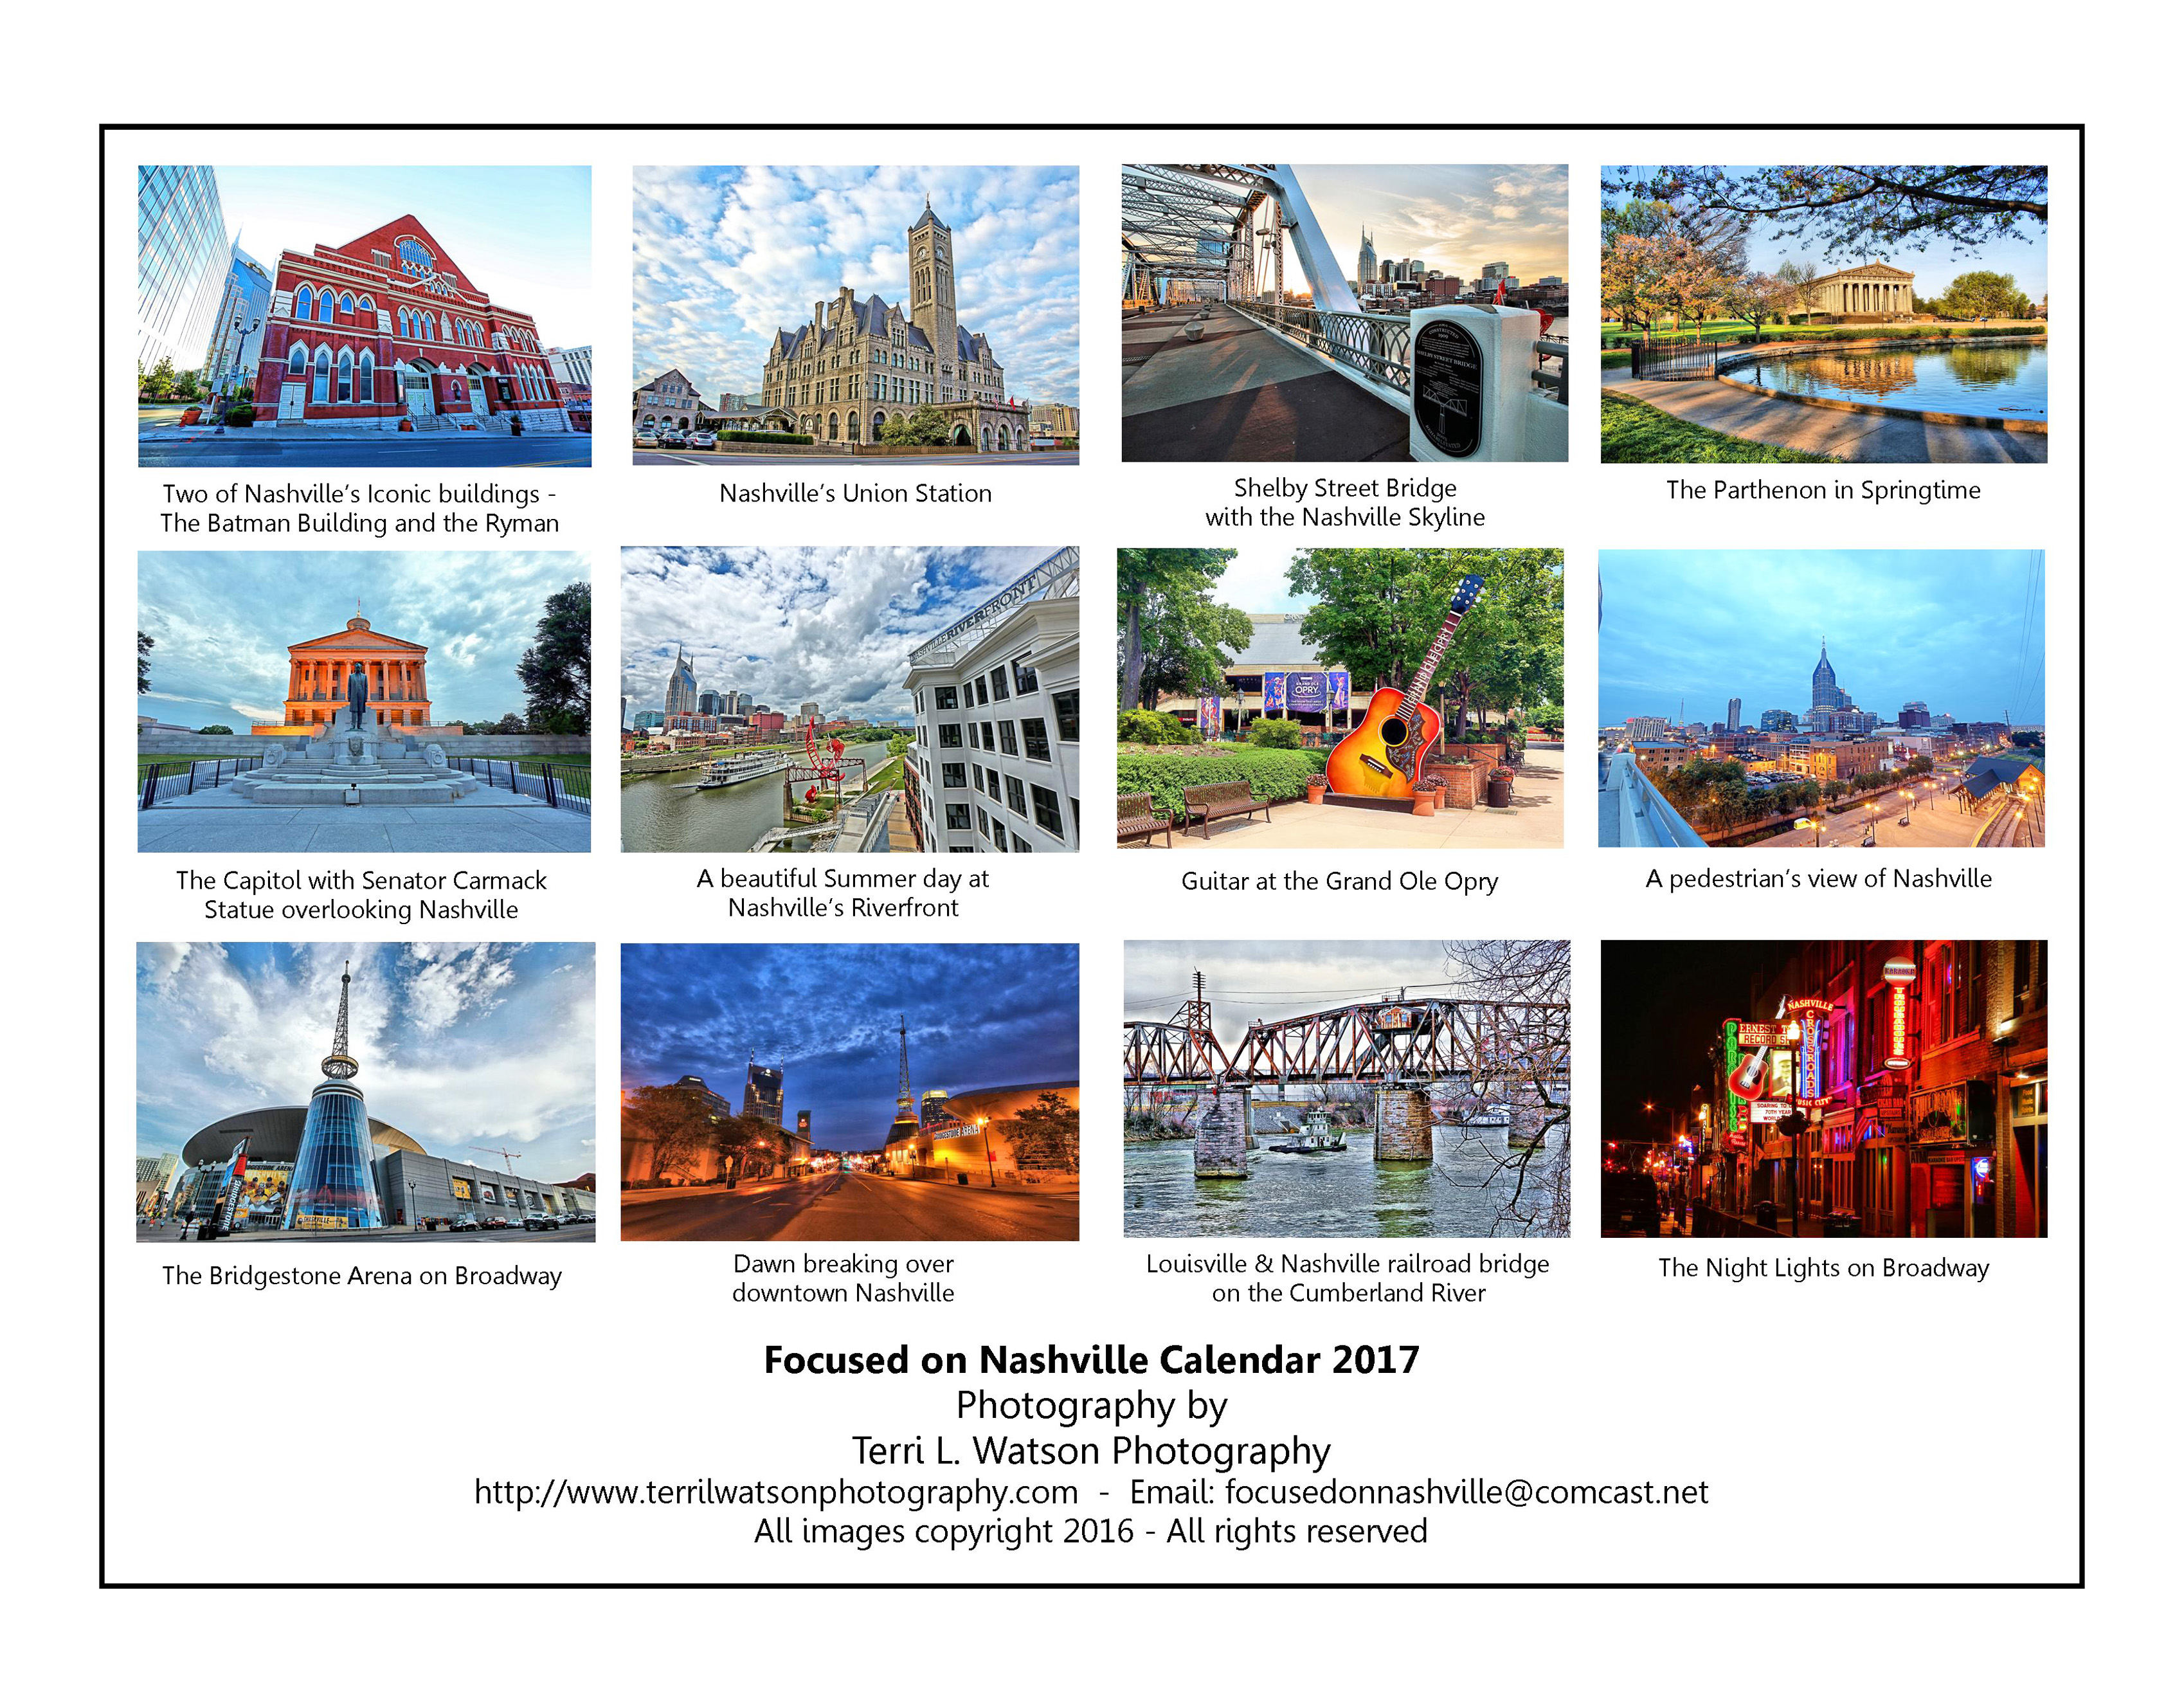 Terri L. Watson Photography Store Calendars and Note Cards